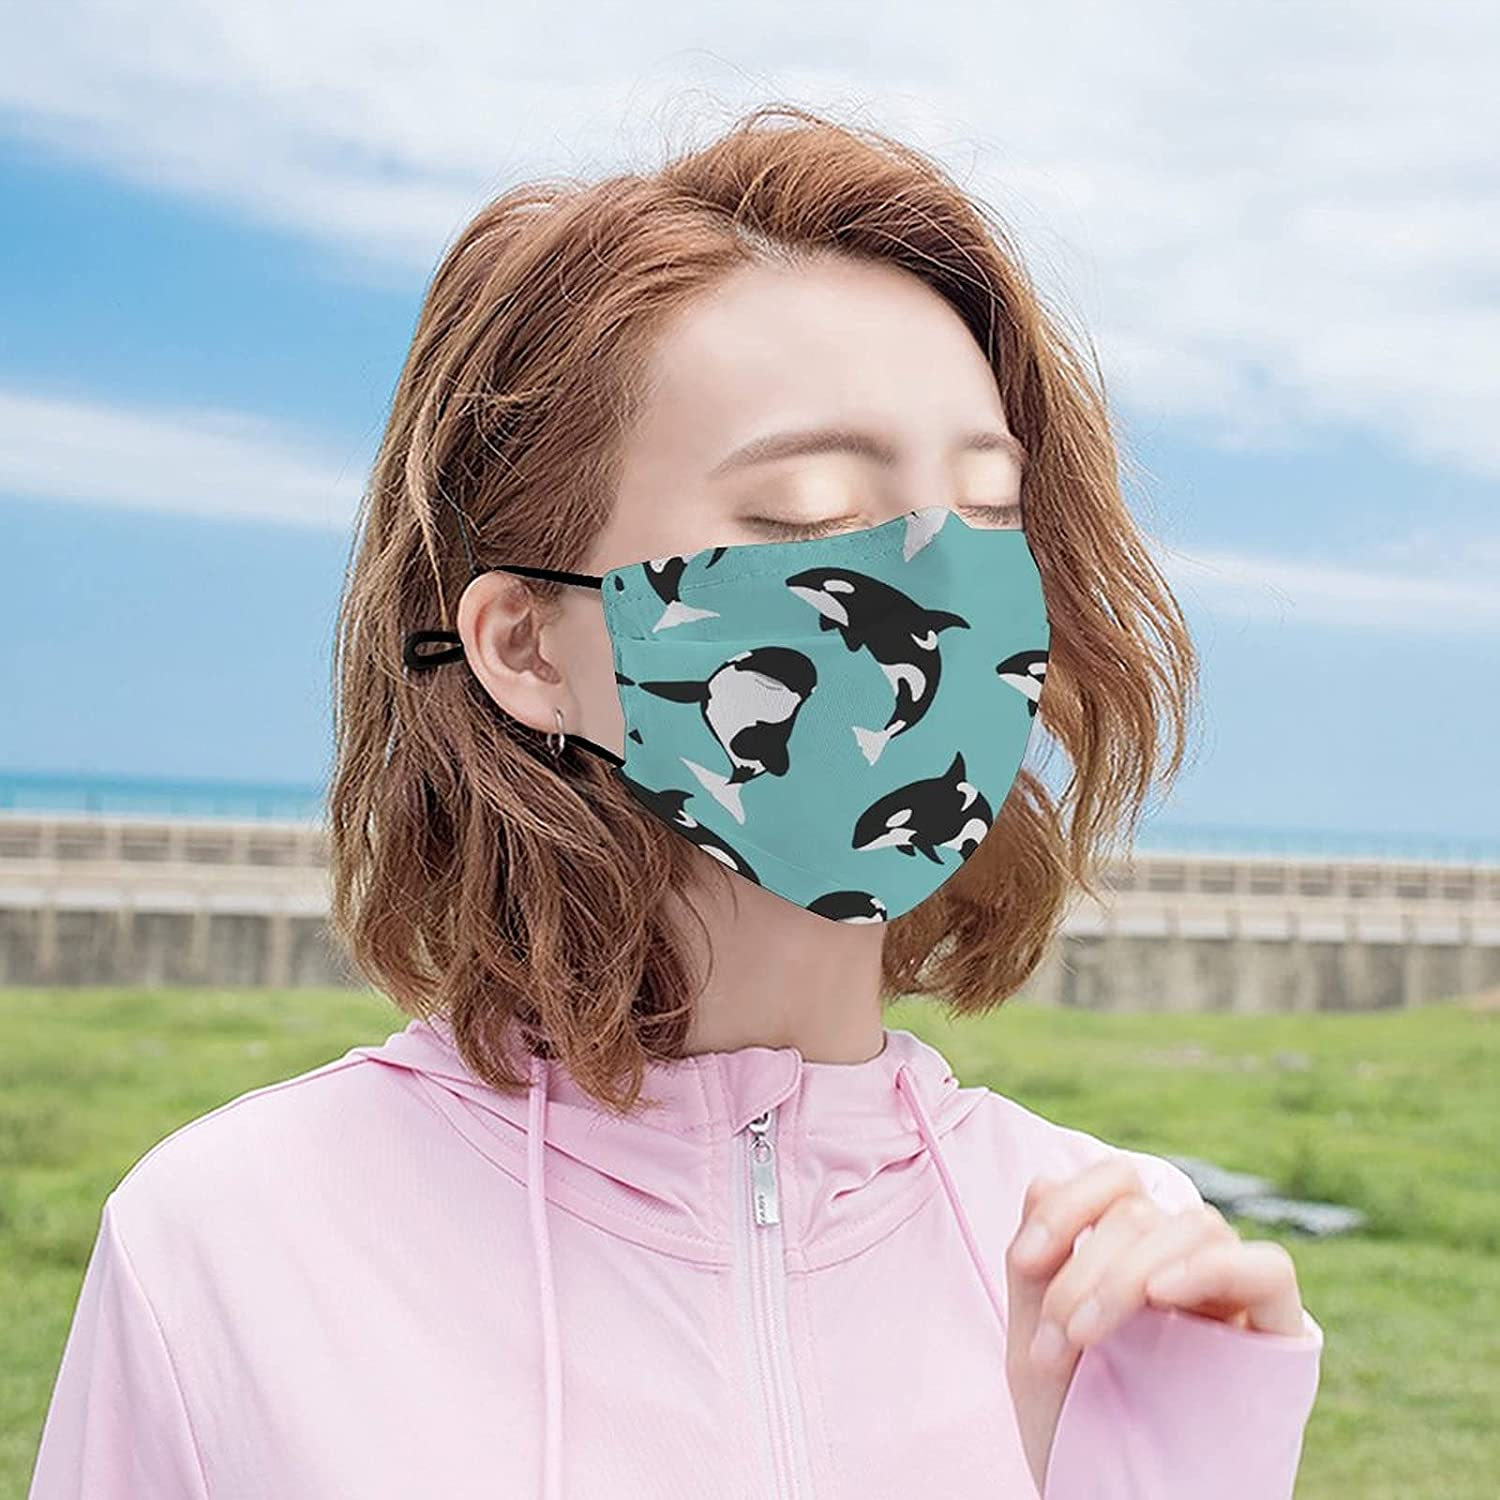 Whale Face Mask Fish Ocean Mask Outdoor Dustproof Adjustable Breathable Balaclava for Women Men Youth with 2 Filter